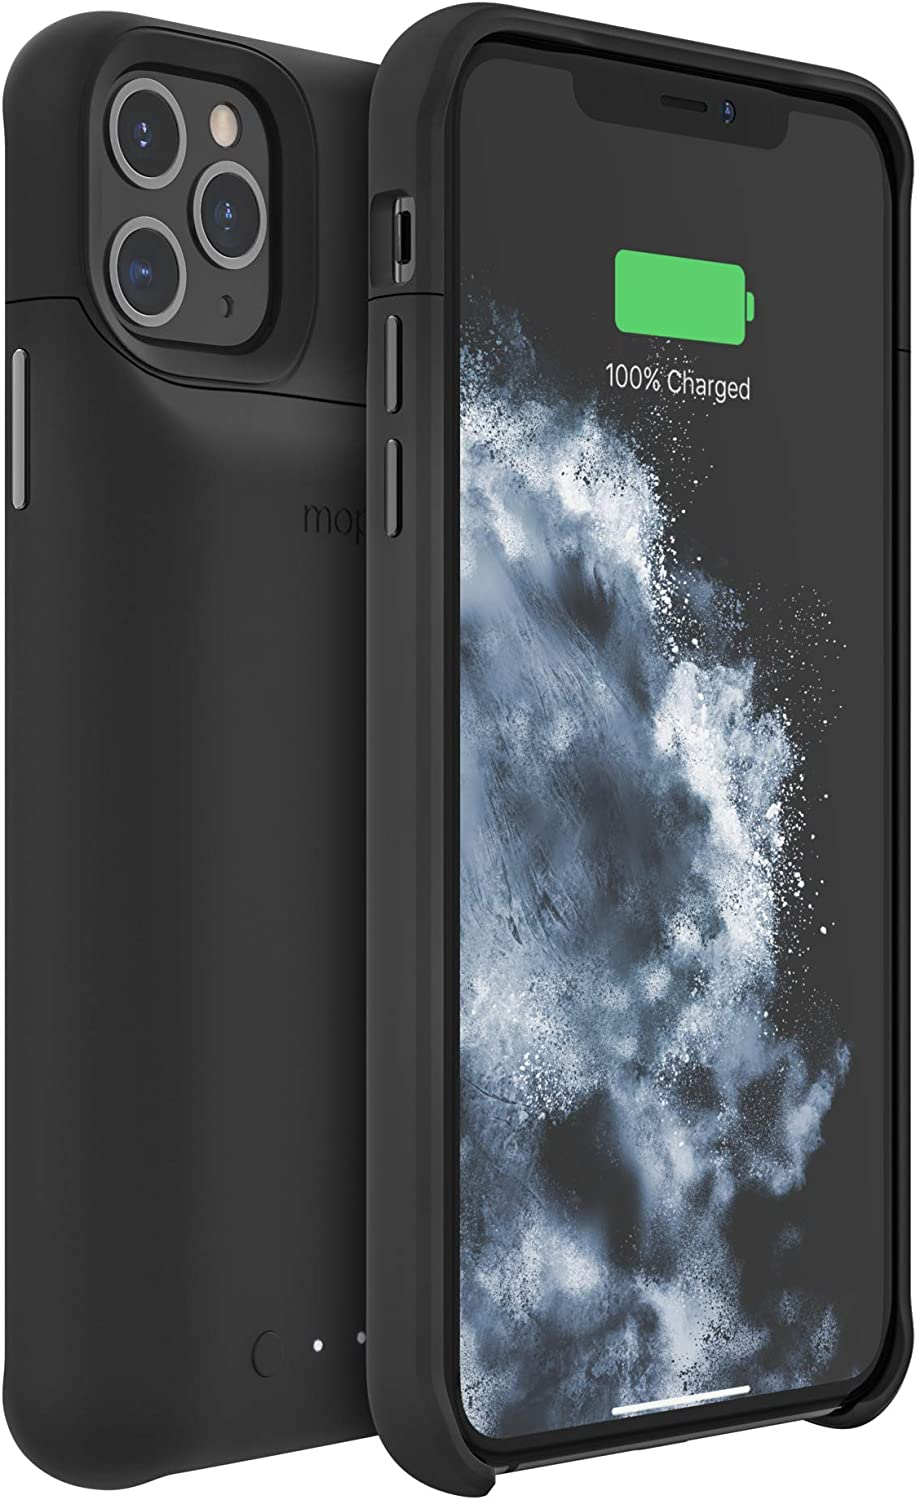 Amazon Com Mophie 401004407 Juice Pack Access Ultra Slim Wireless Charging Battery Case Made For Apple Iphone 11 Pro Max Black